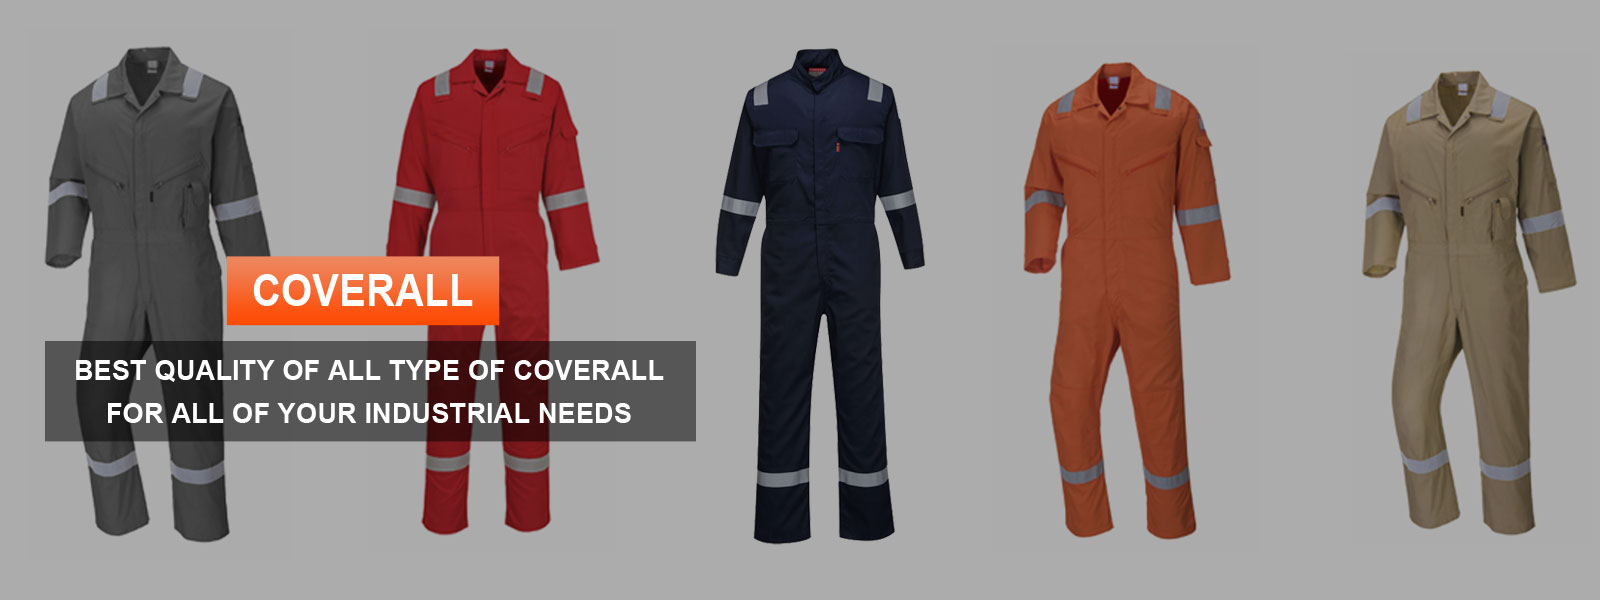 Coverall Manufacturers in Iraq